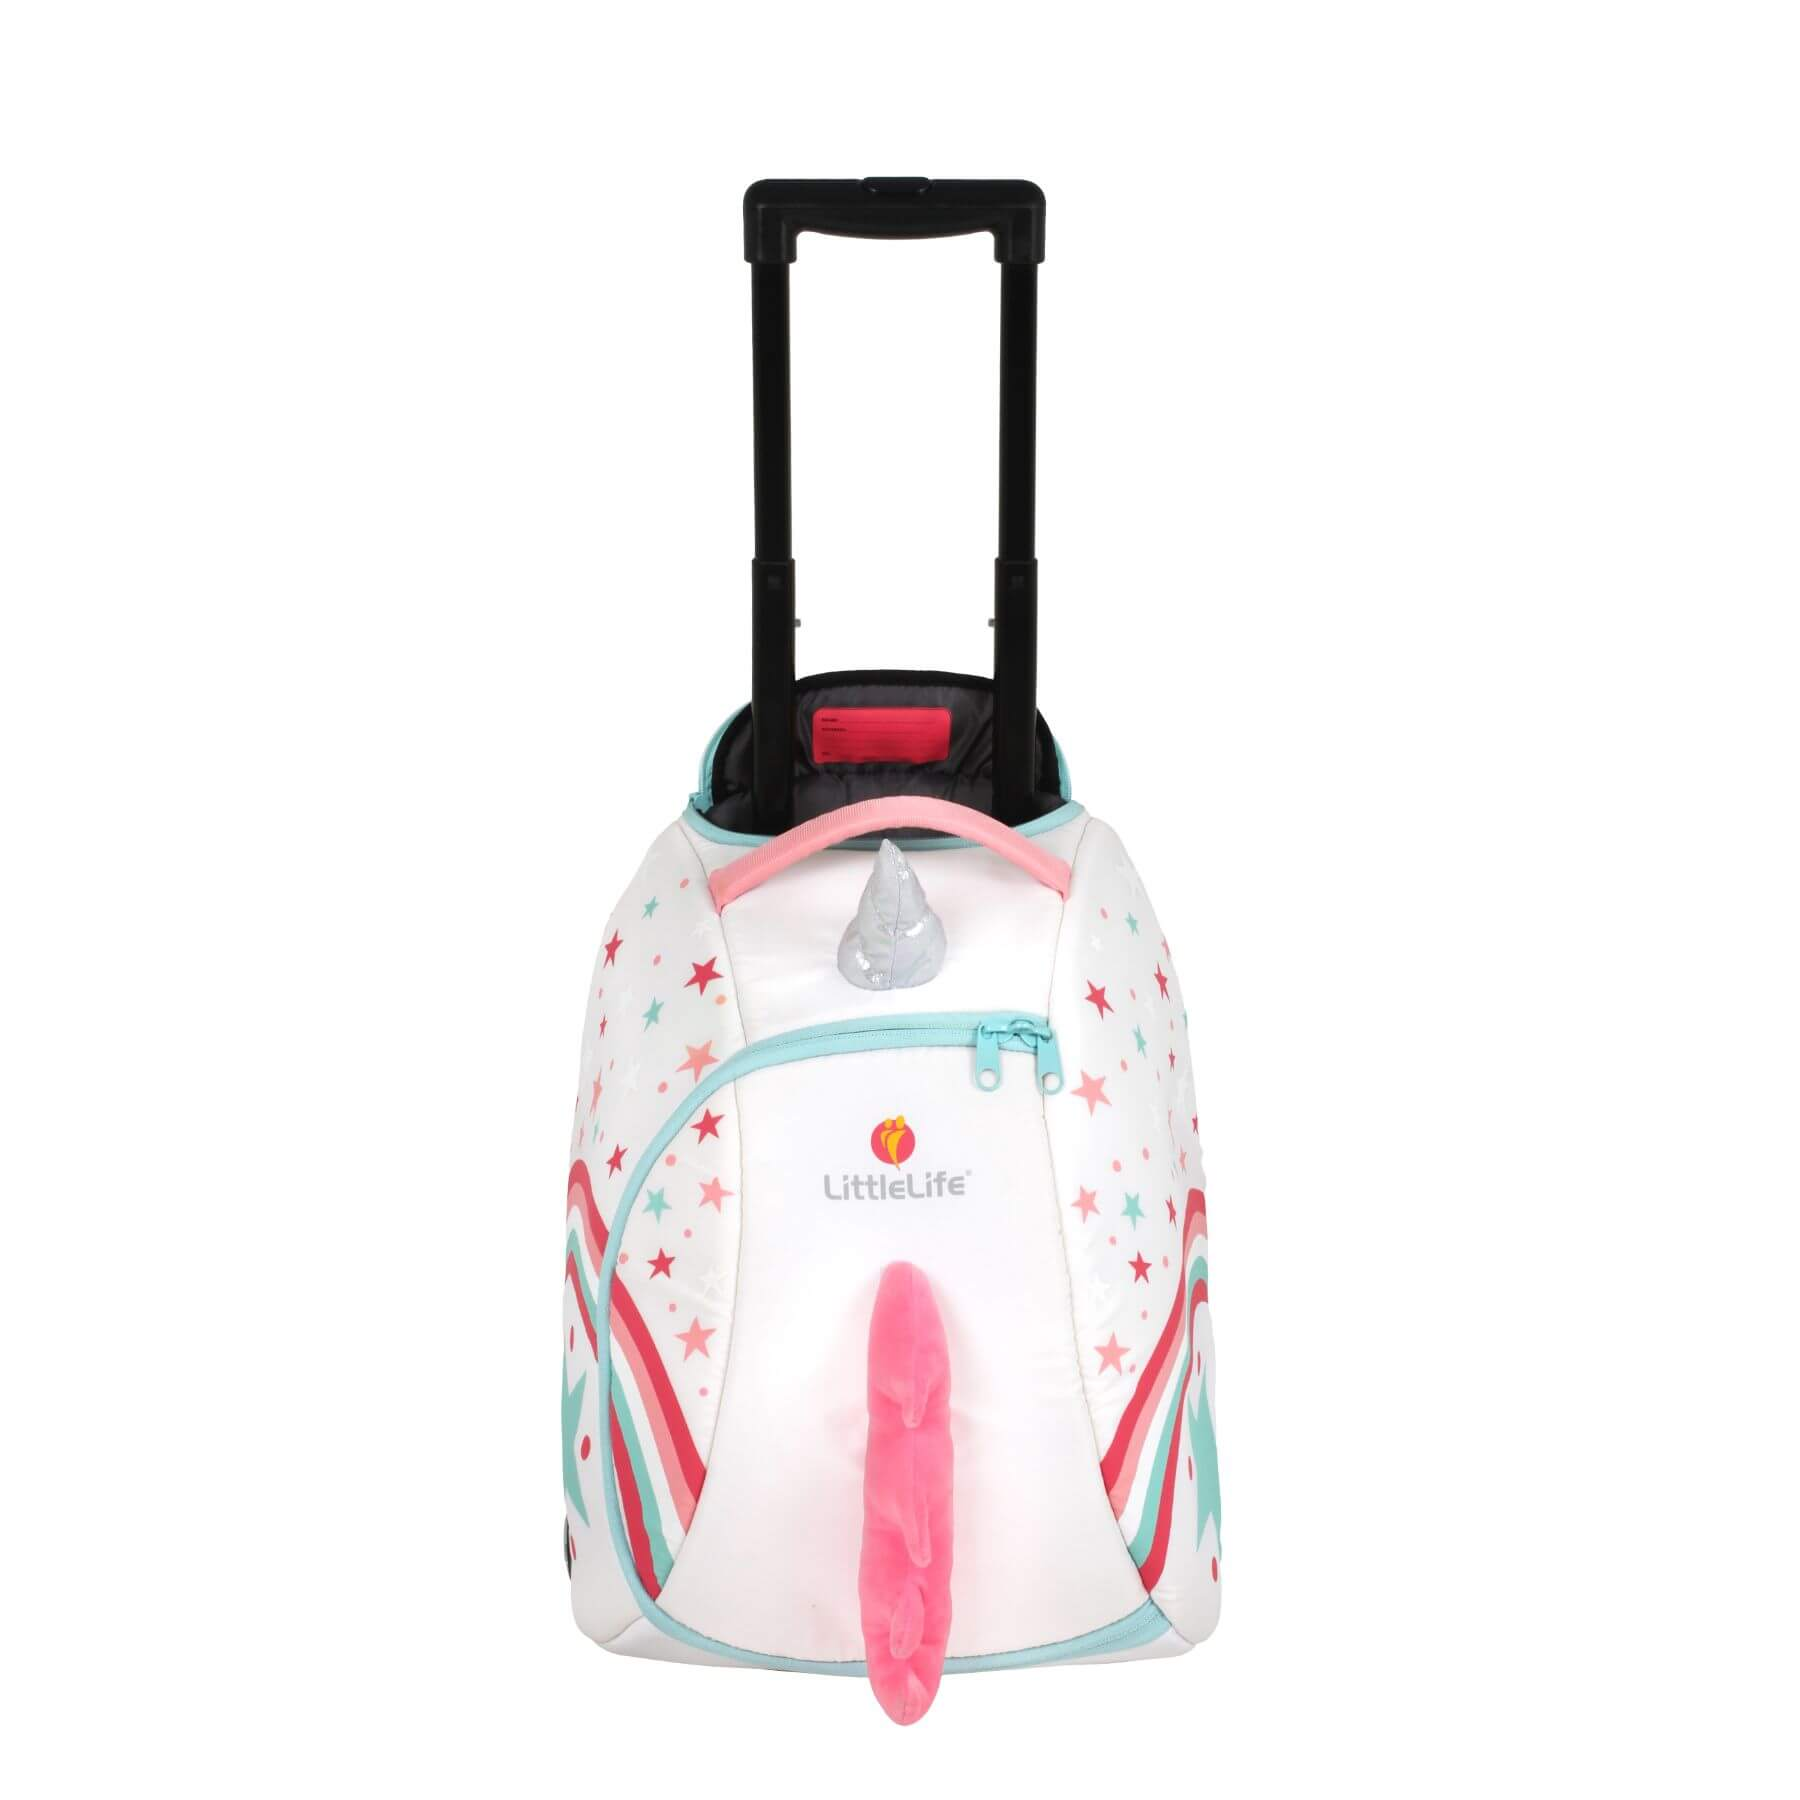 Little Life Childrens Suitcase - Unicorn